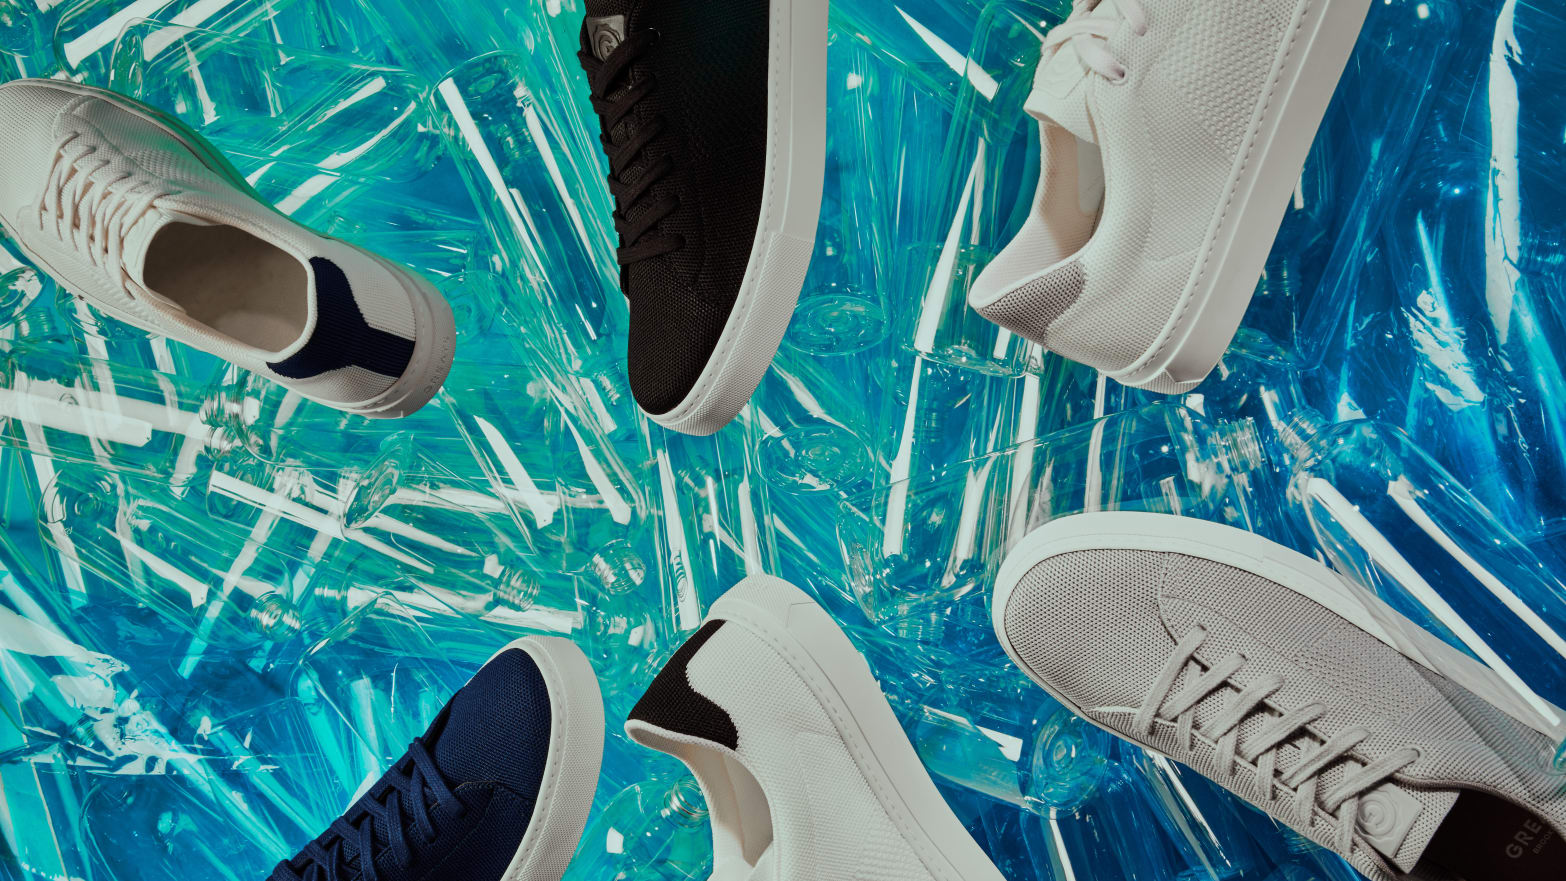 bf6f291a014 GREATS Launches Sustainable, Recycled Royale Knit Sneaker